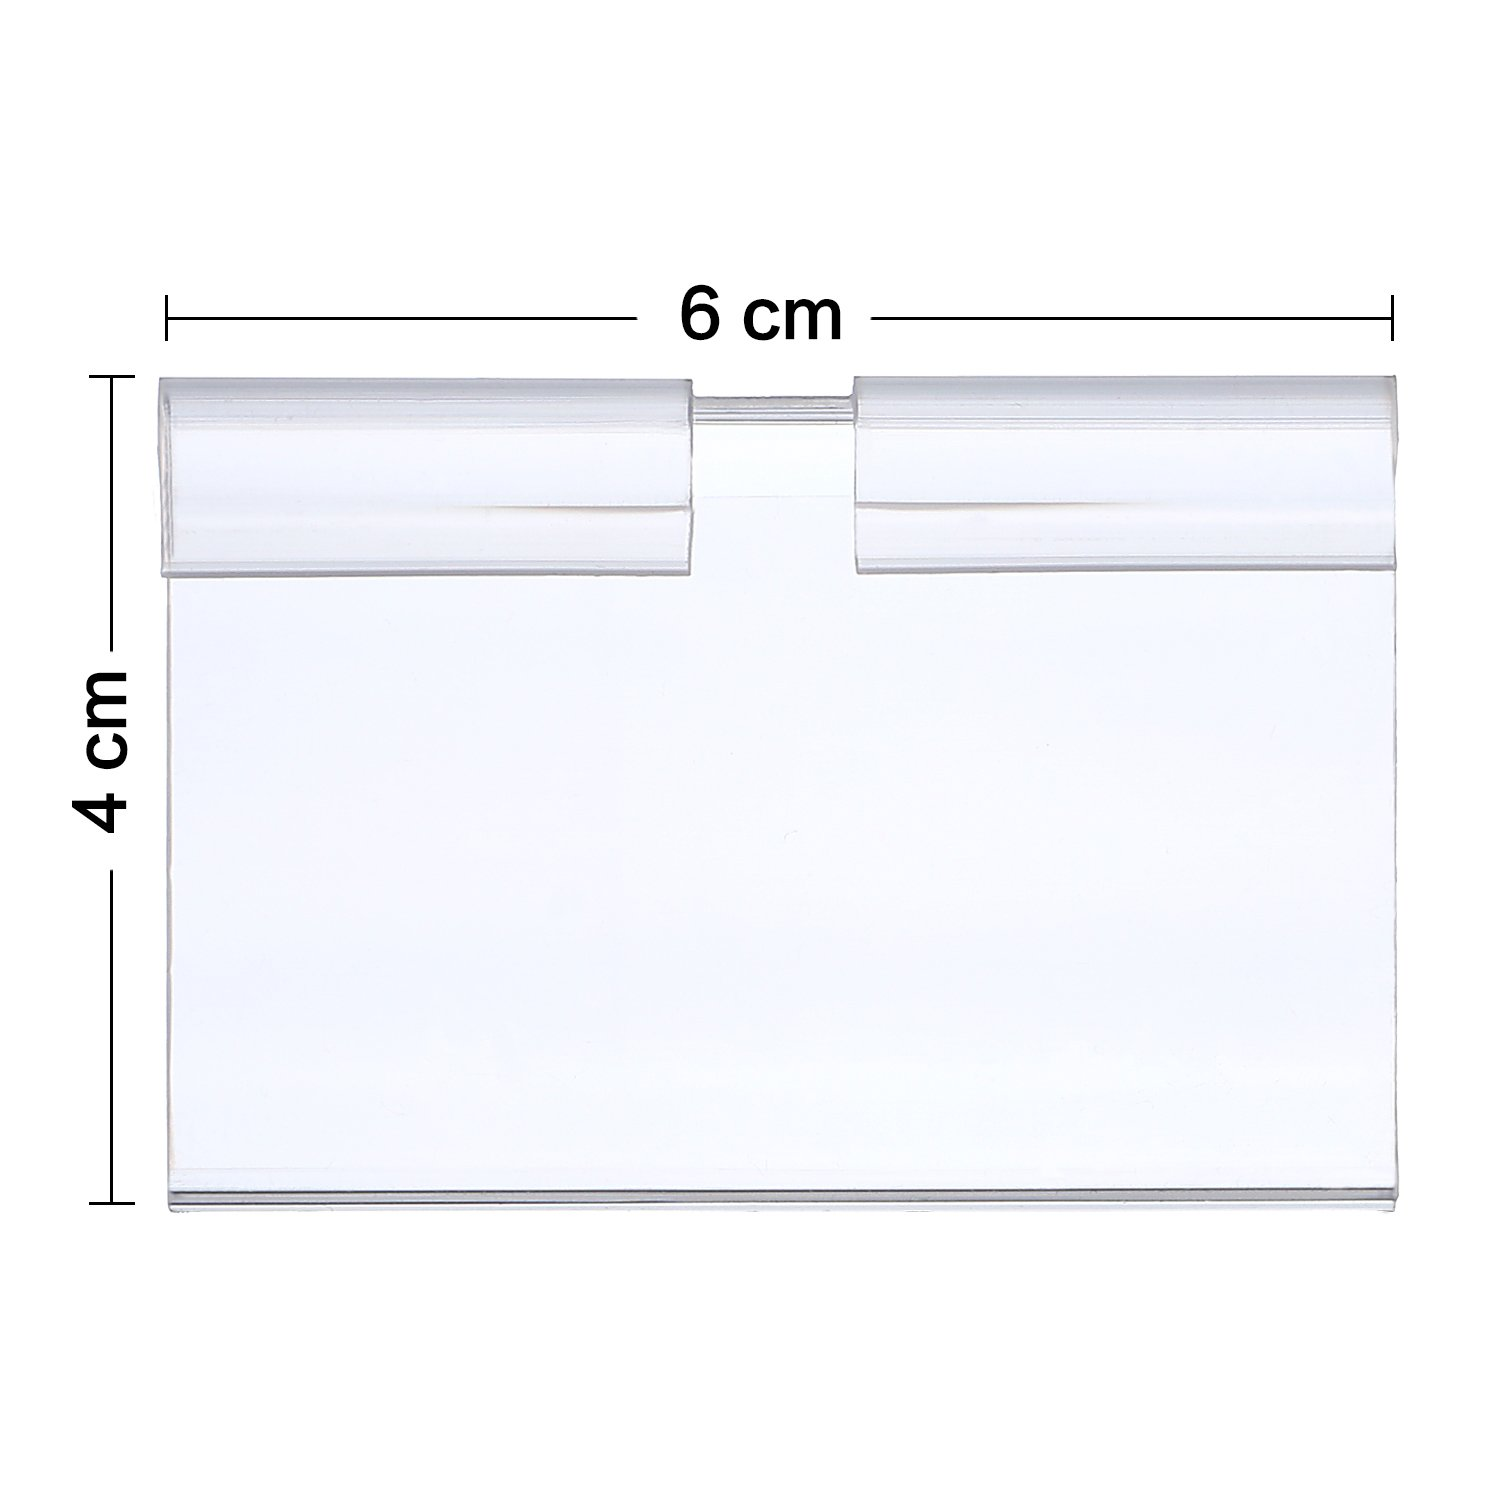 Hestya Price Label Holder Clear Plastic Wire Shelf Retail Label Holder Merchandise Sign Display Holder (100) by Hestya (Image #2)